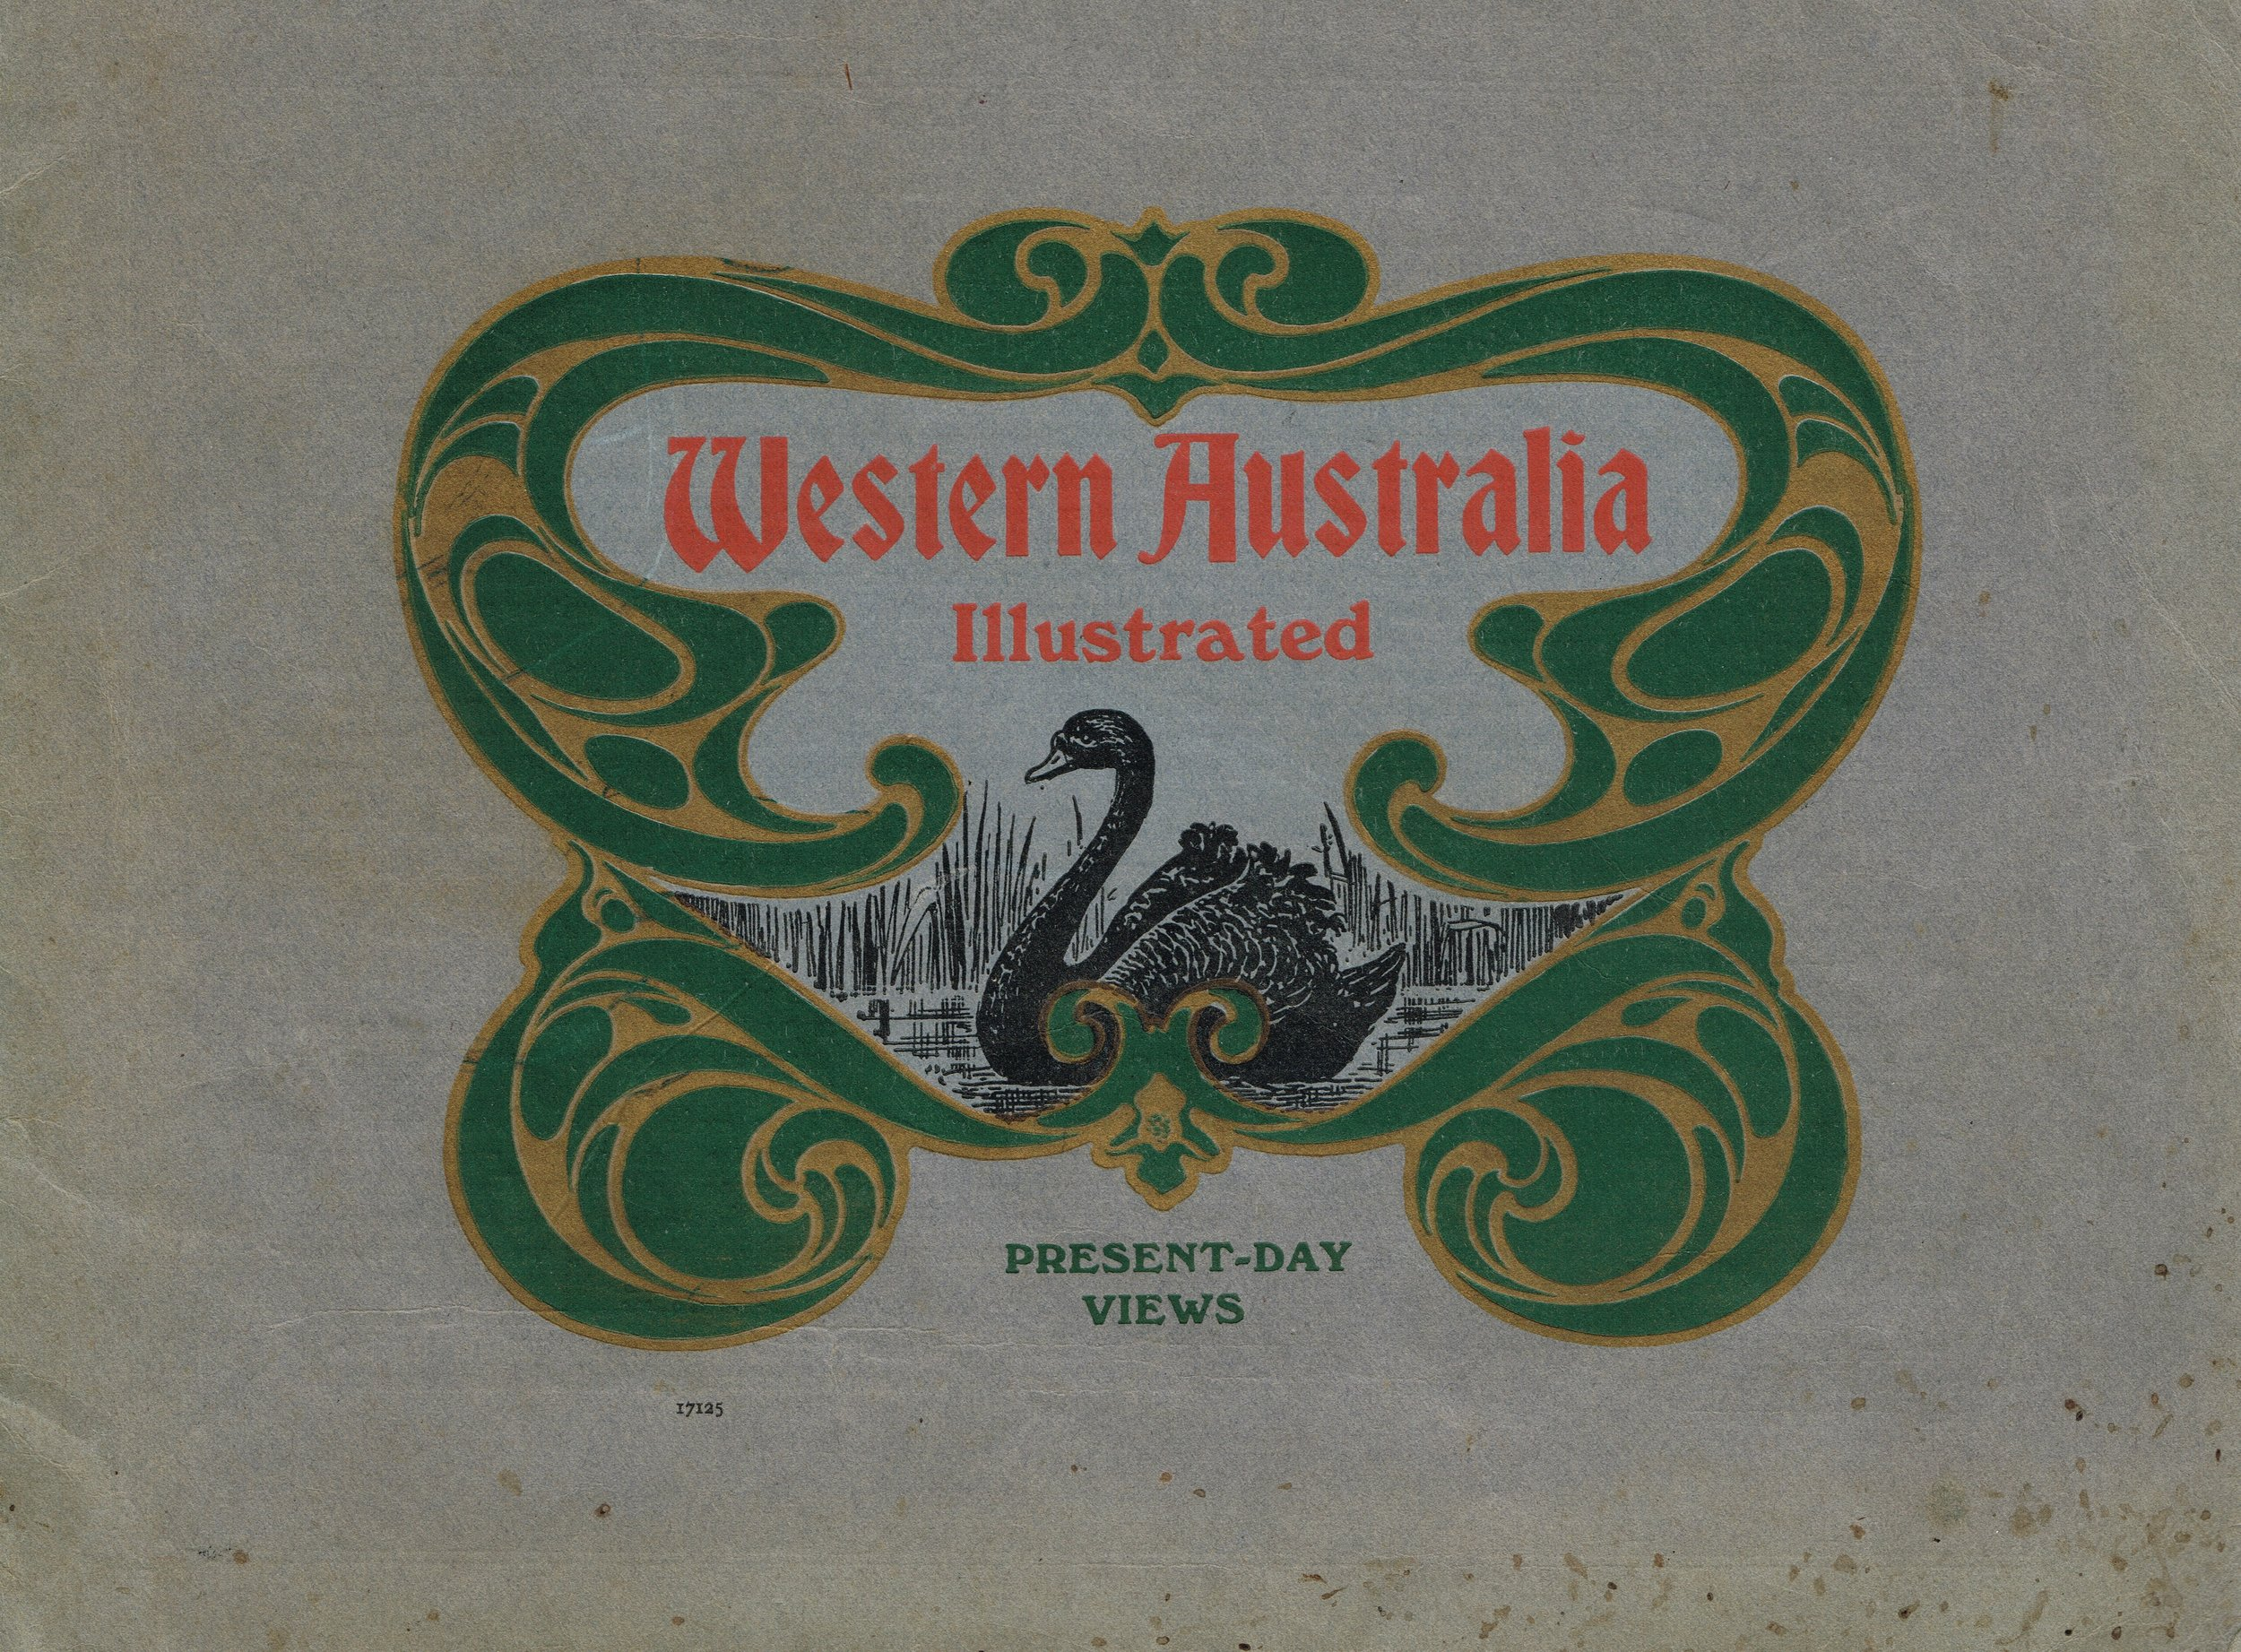 Western Australia illustrated : Present-day views  Government Tourist and Publicity Bureau